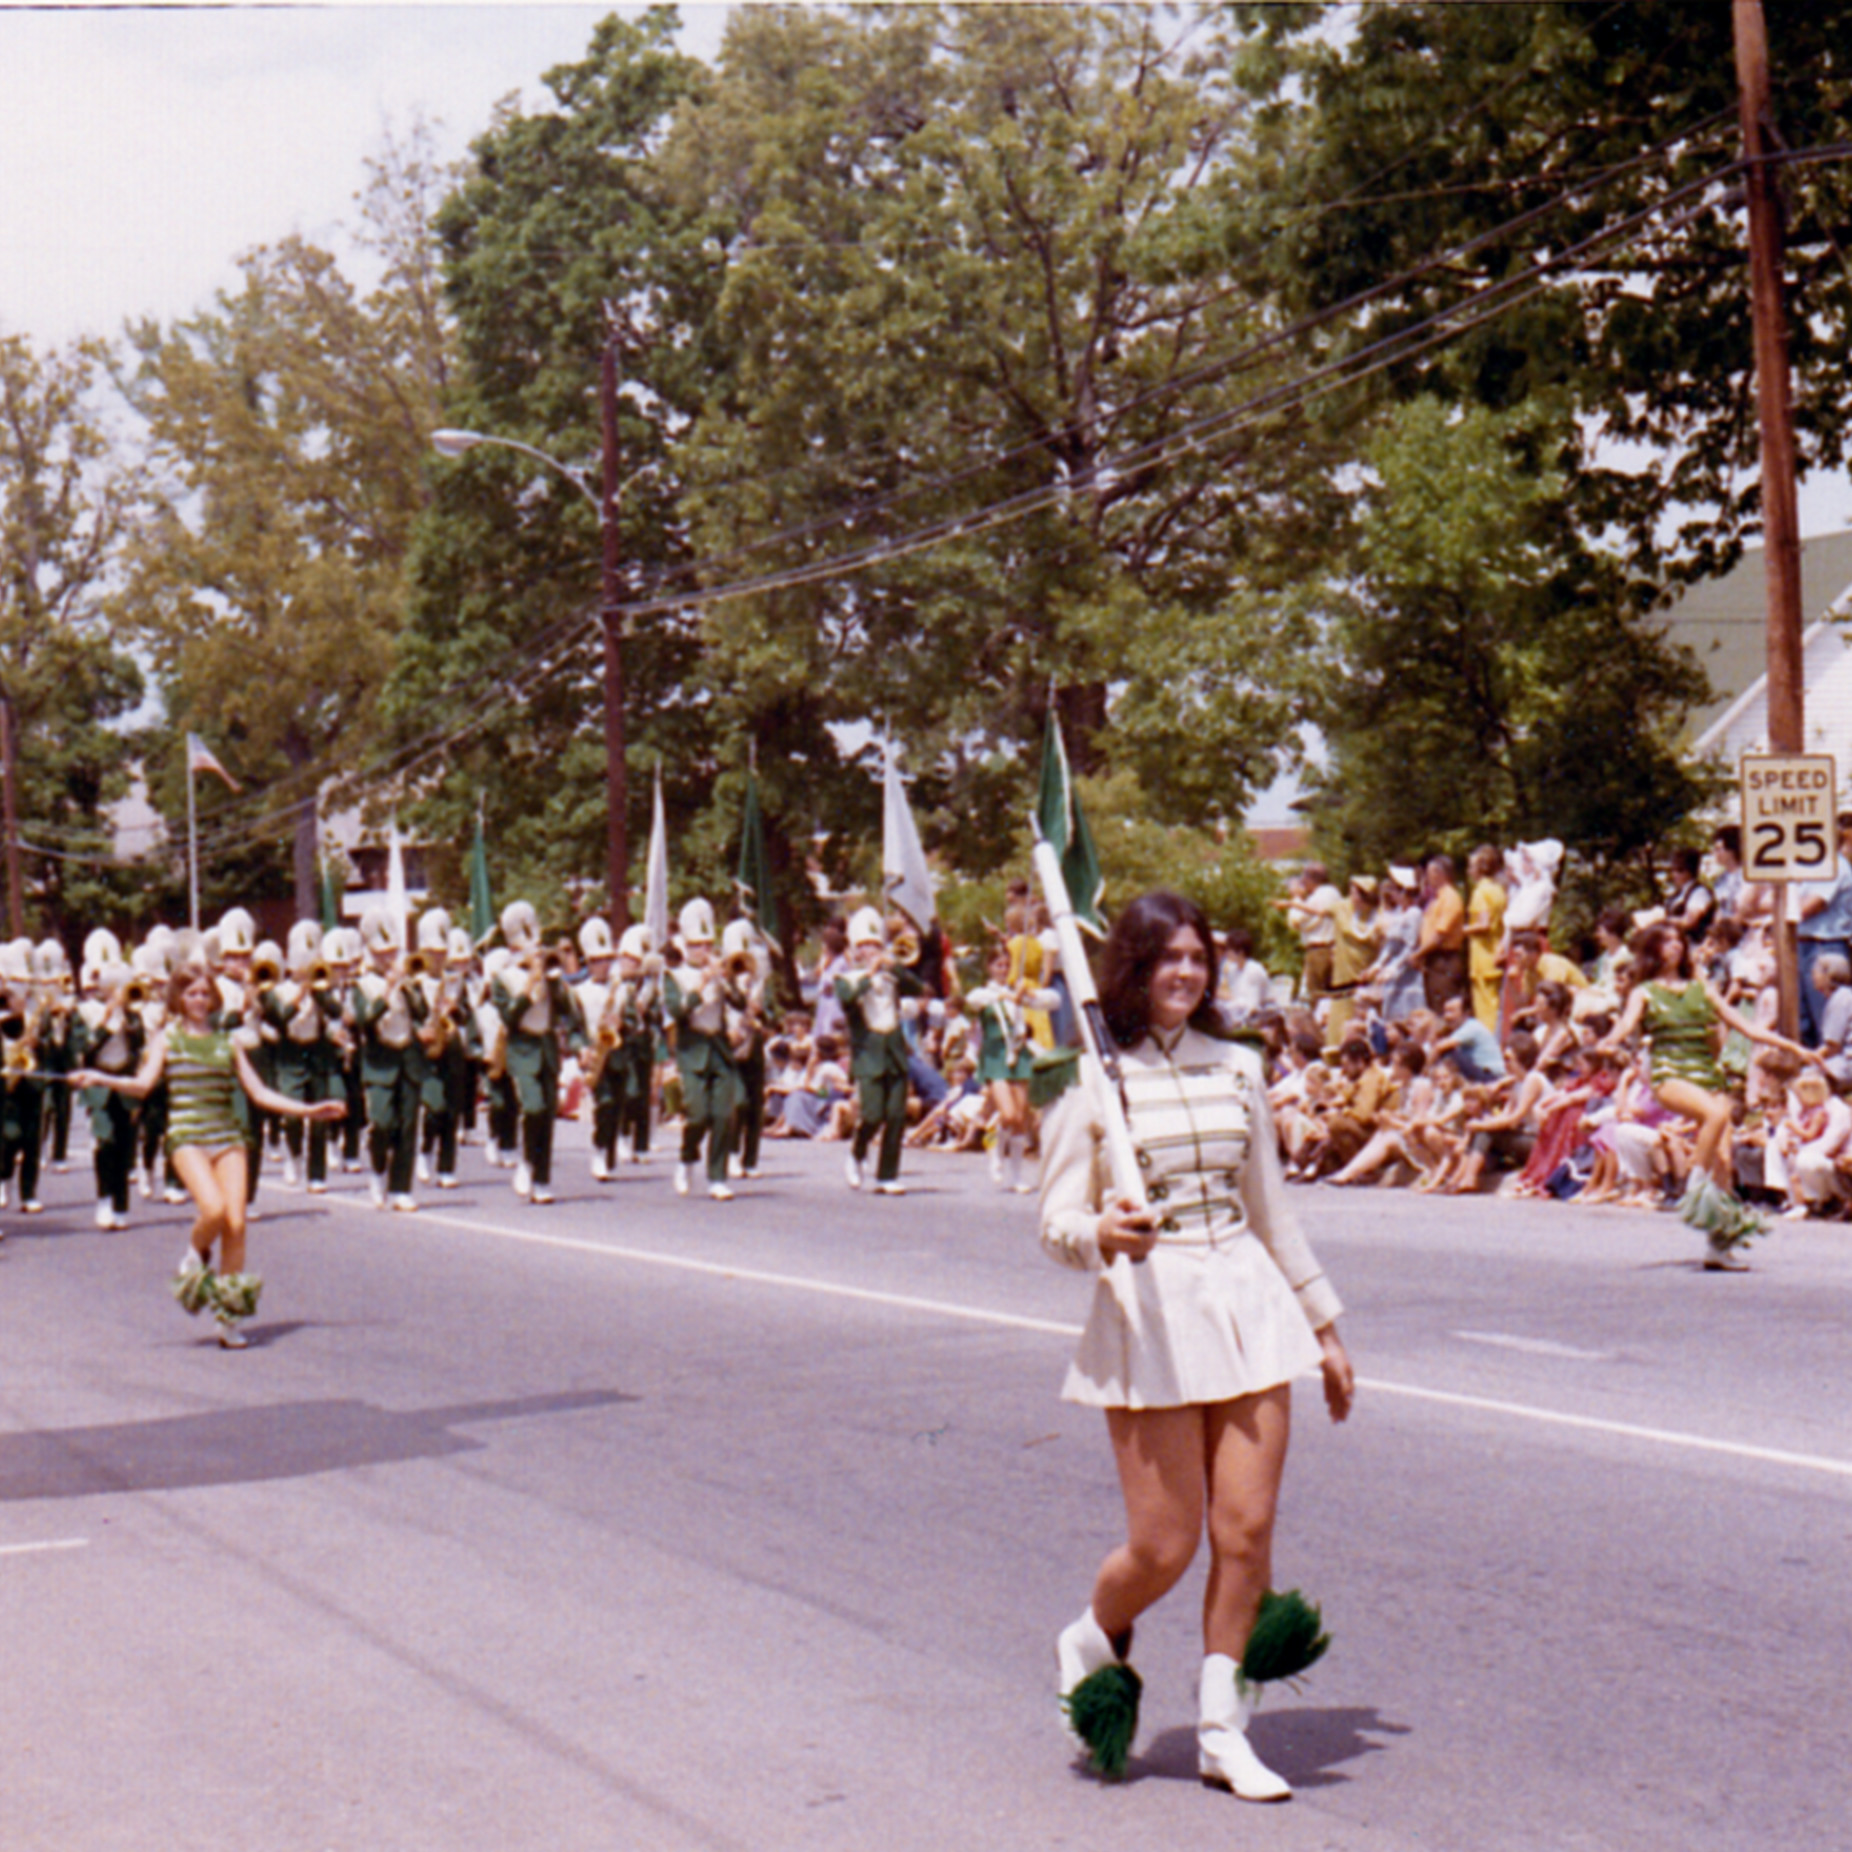 Photo of marchers in Cary, NC's centennial parade down Academy Street in 1971.